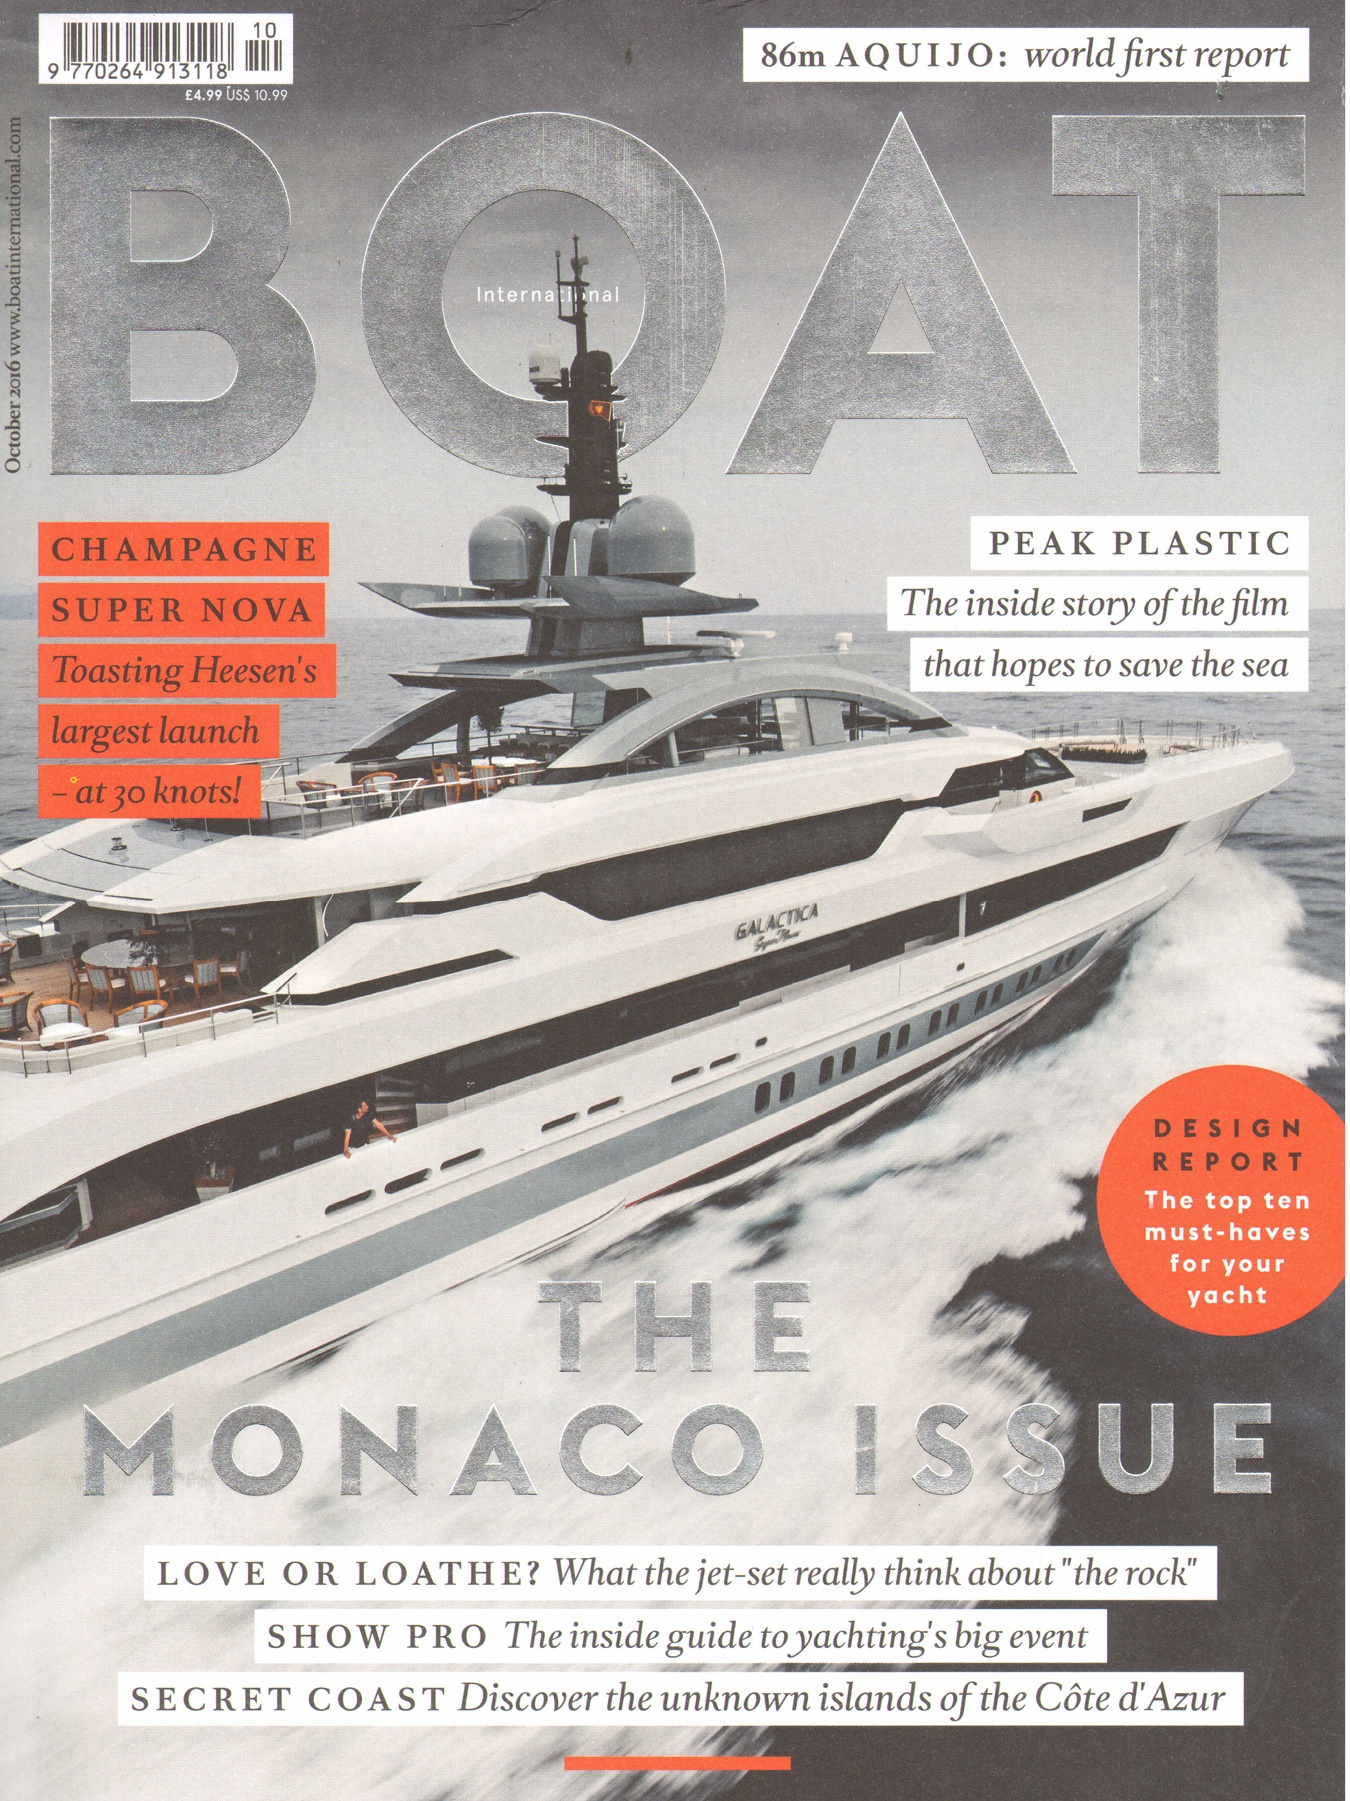 Boat International Oct 2016 Front Cover_2.jpg